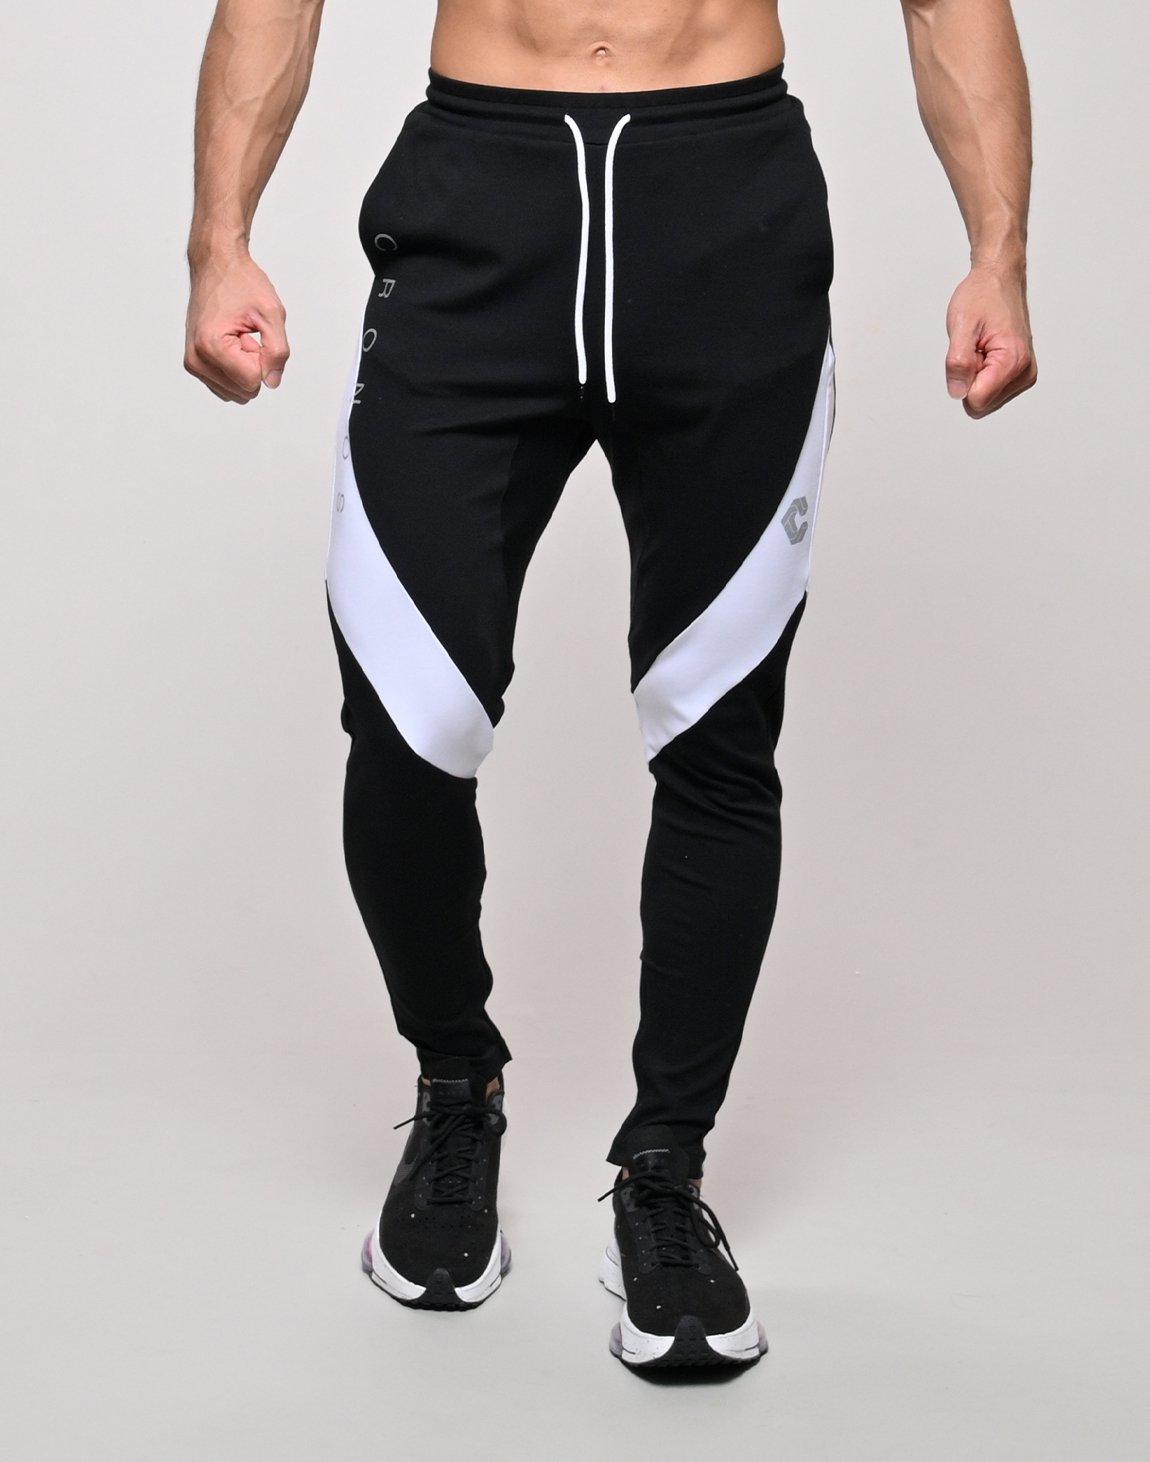 <img class='new_mark_img1' src='https://img.shop-pro.jp/img/new/icons55.gif' style='border:none;display:inline;margin:0px;padding:0px;width:auto;' />CRONOS QUADRICEPS LINE PANTS【BLACK】